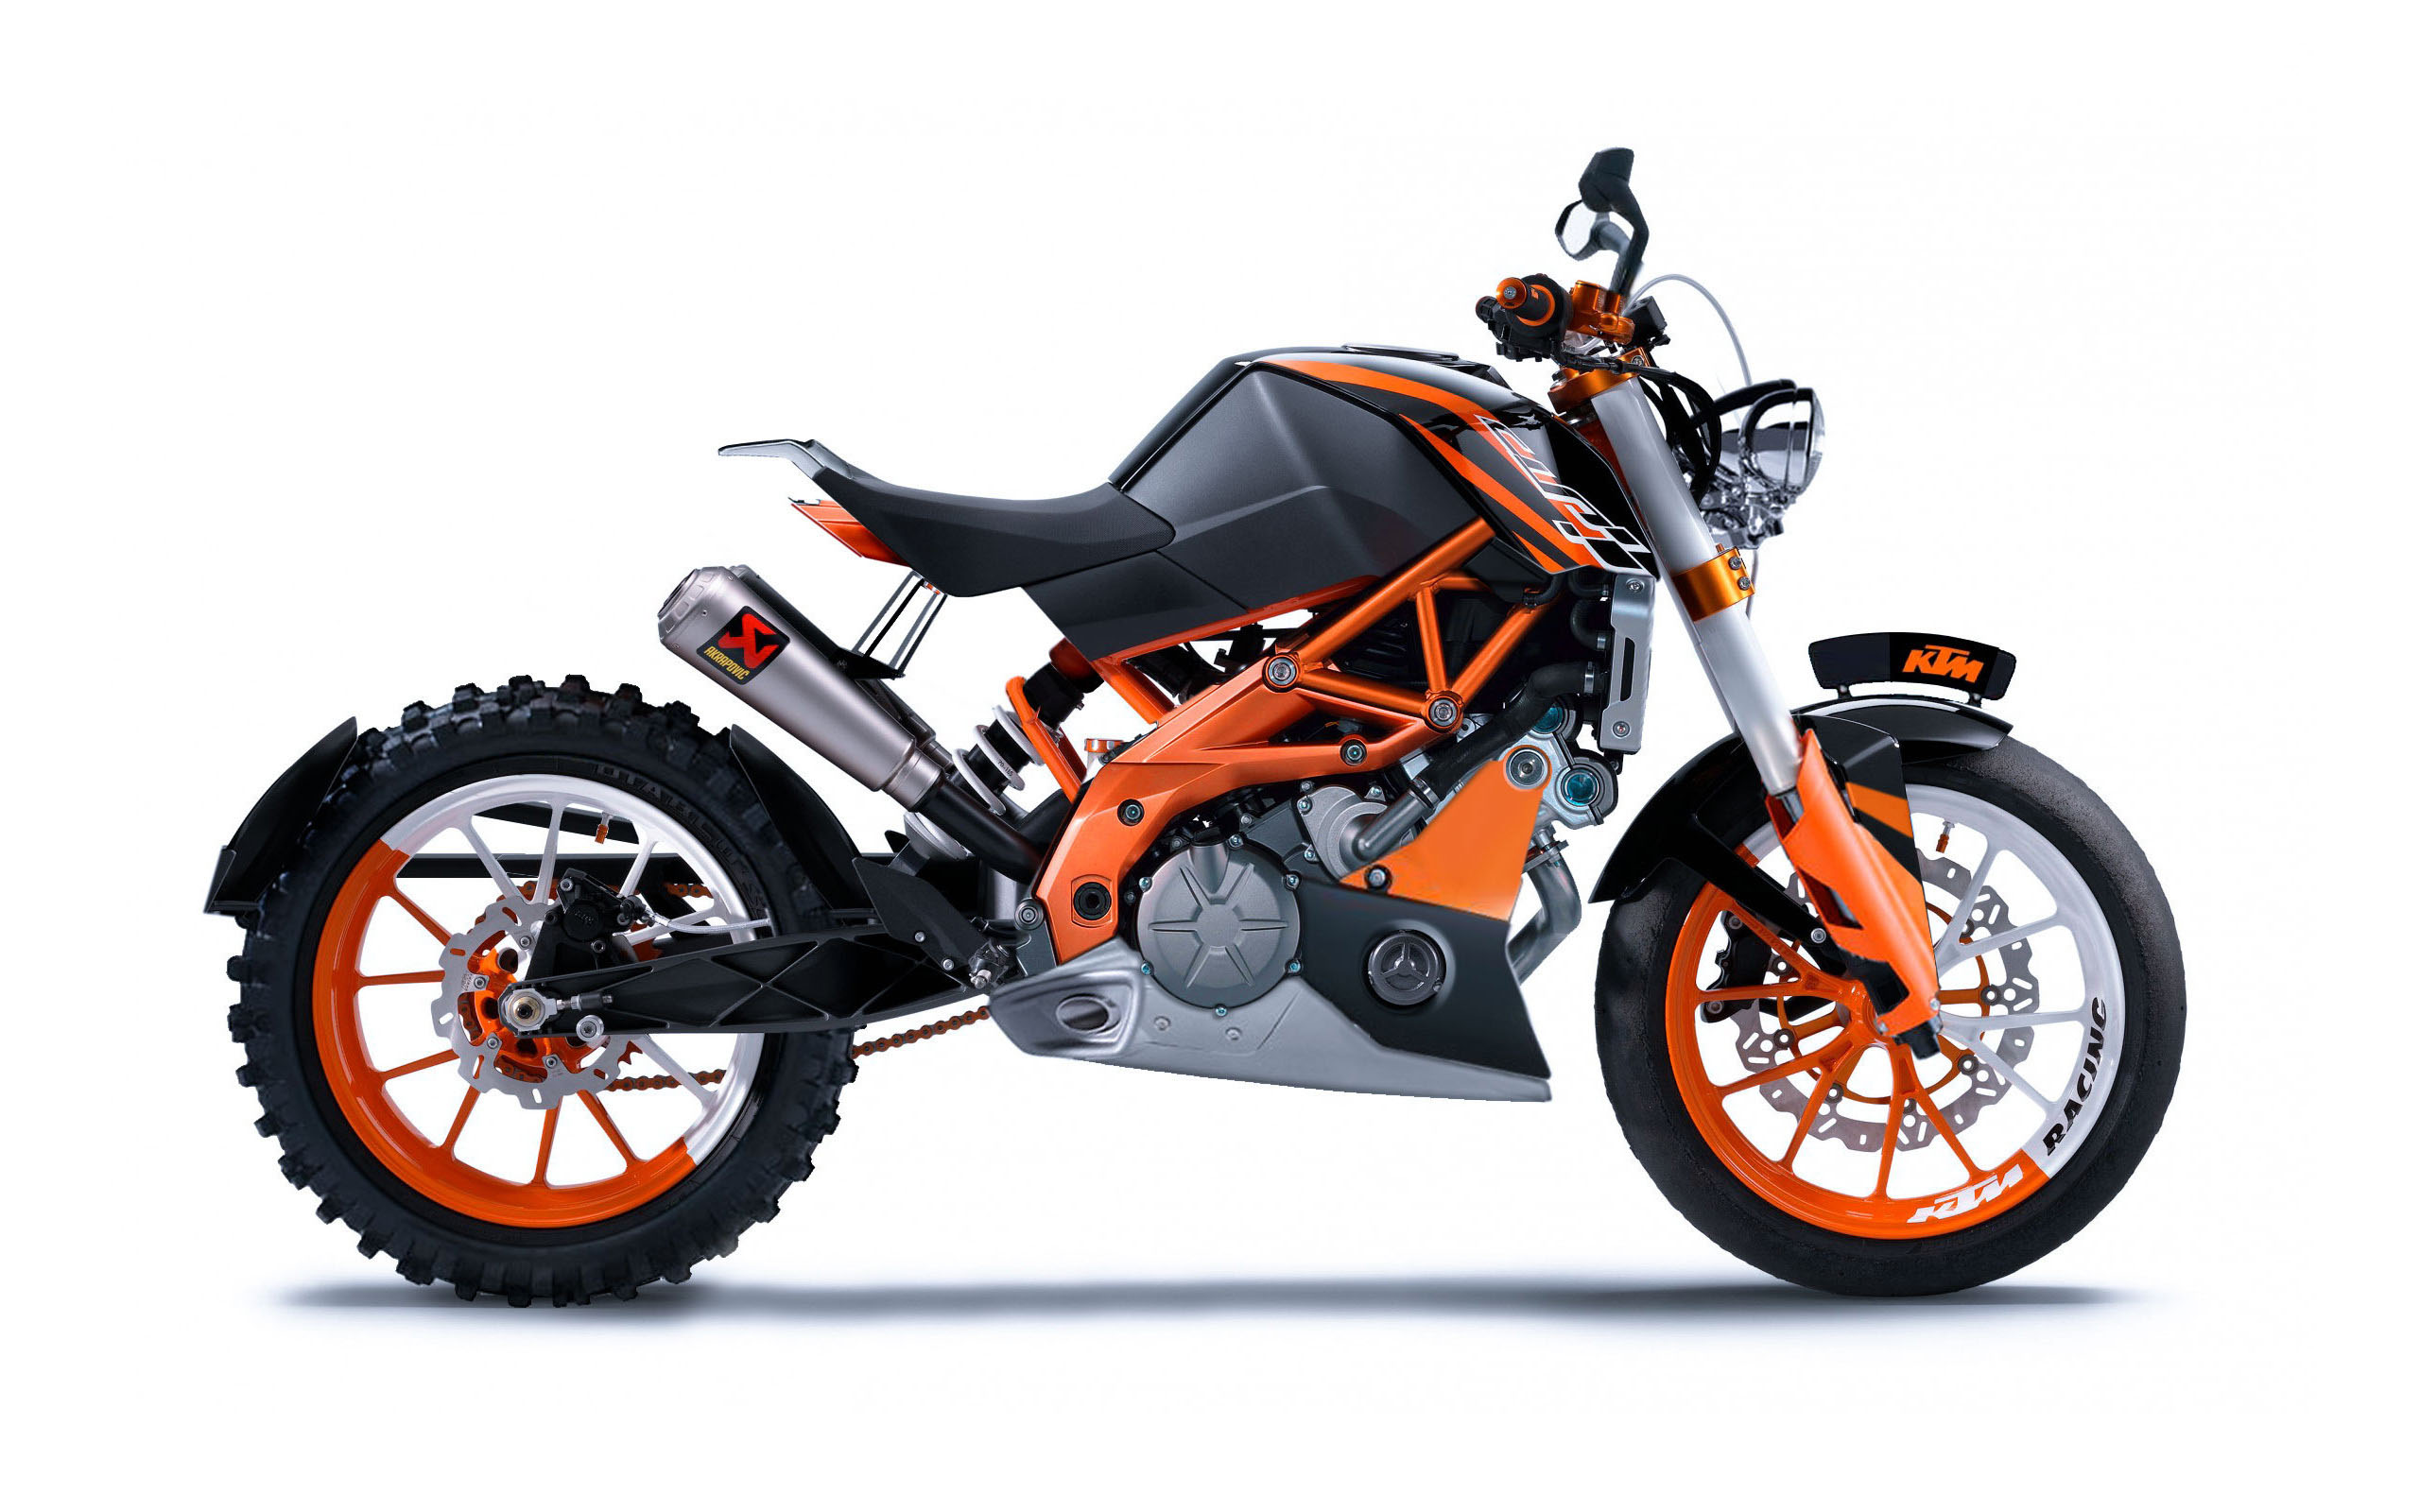 ktm duke 125cc hd bikes 4k wallpapers images backgrounds photos and pictures. Black Bedroom Furniture Sets. Home Design Ideas